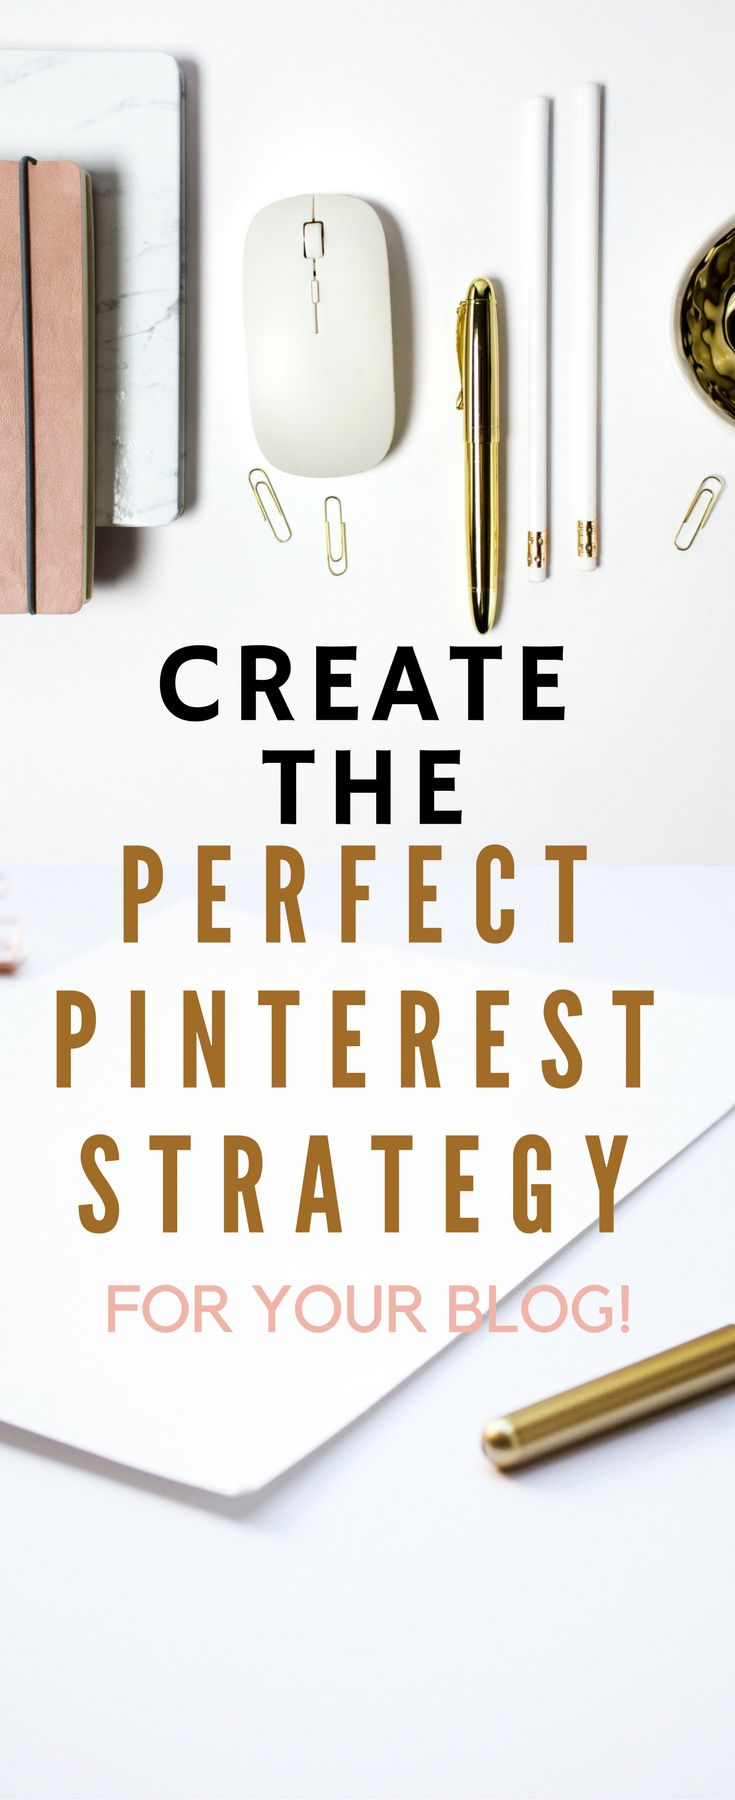 Creating the perfect Pinterest strategy for your blog is so important, and finally after a year of blogging I've figured out a strategy that brings in 100k pageviews. Here's how you can find your own strategy.